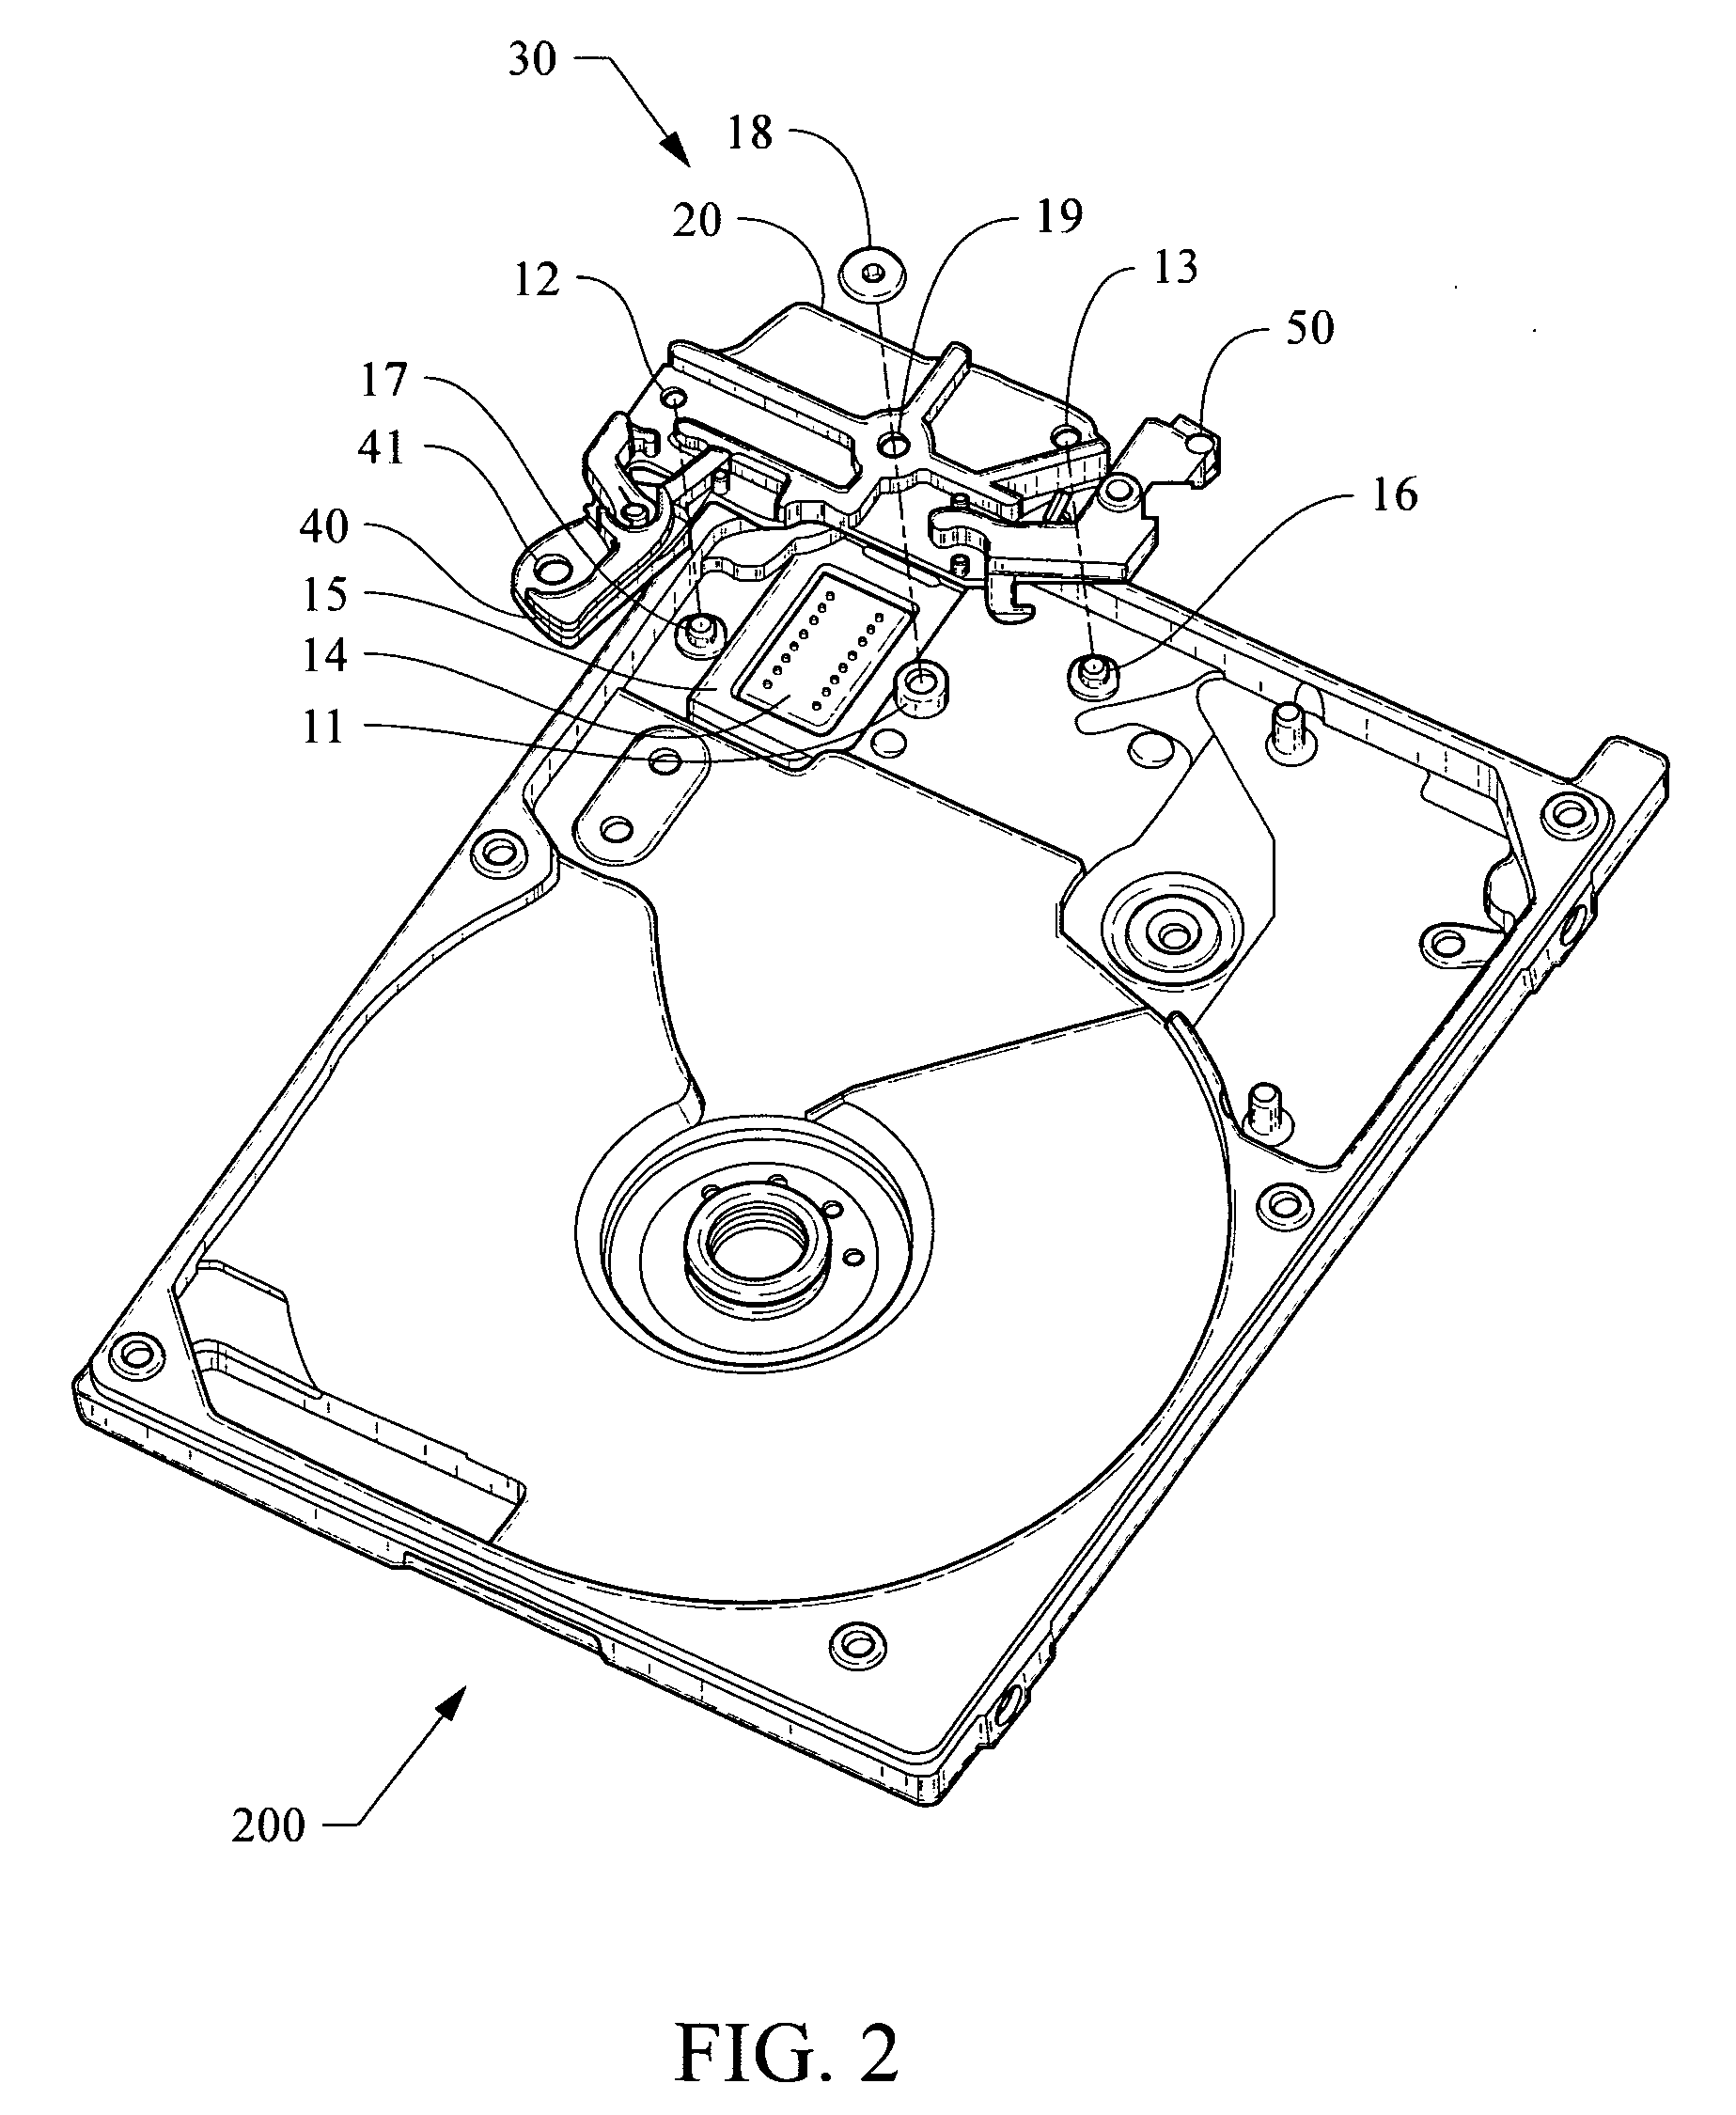 patent us20100296198 - sub-assembly for a hard disc drive